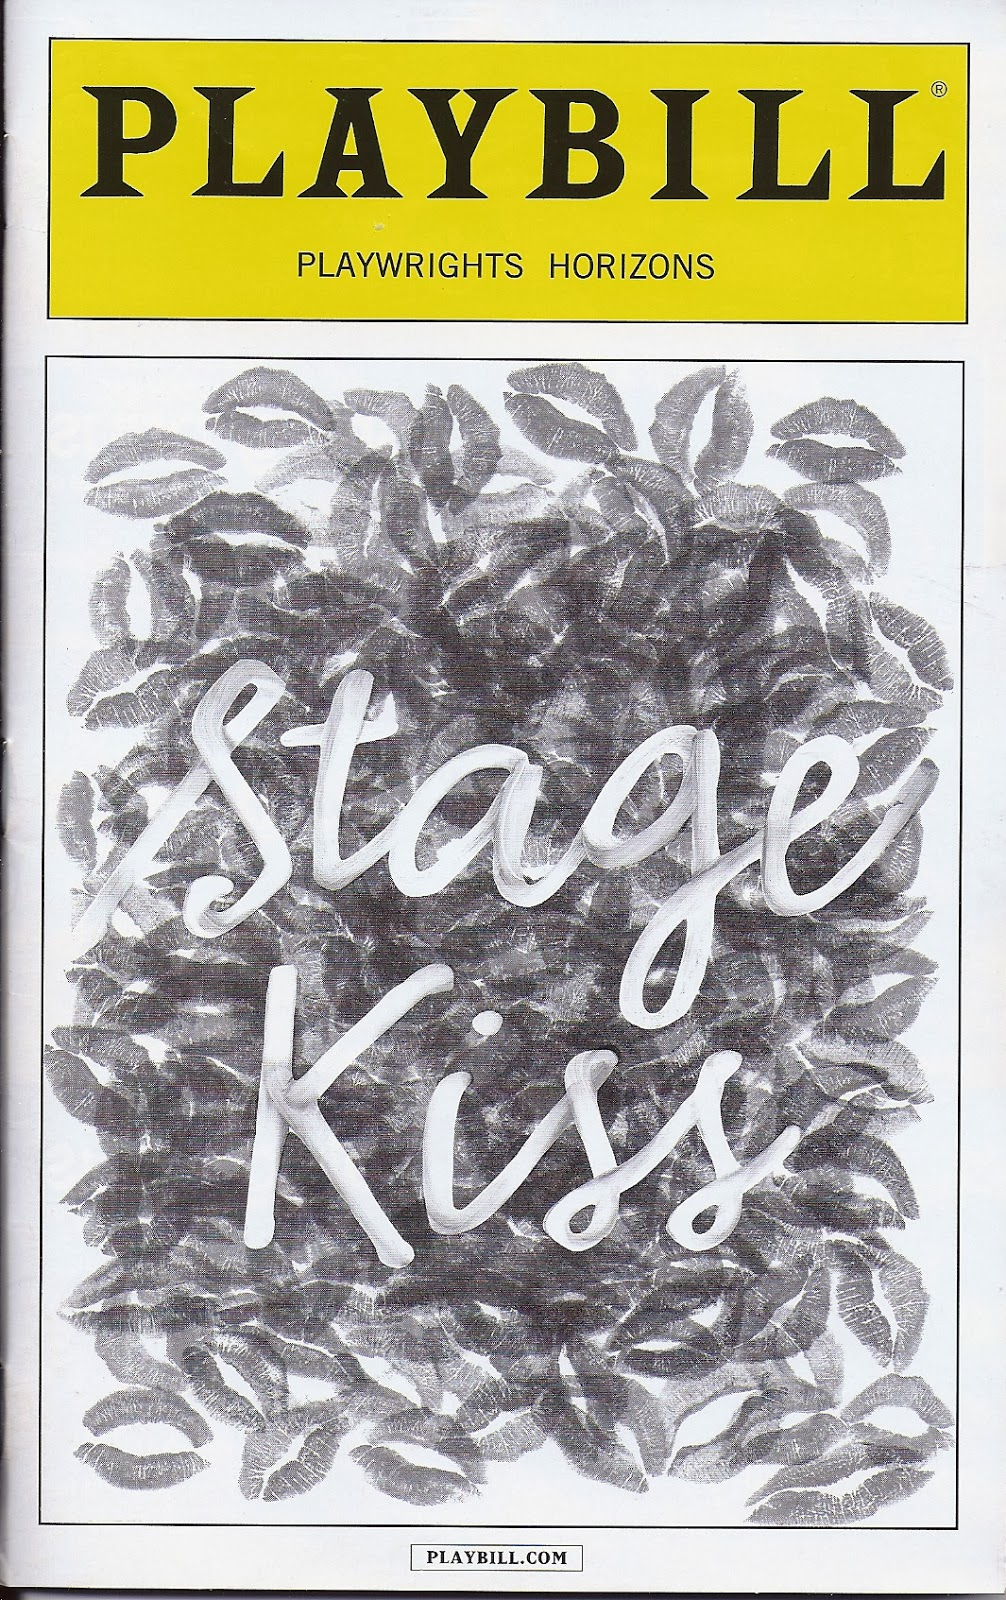 Theatre 39 s leiter side 243 review of stage kiss march 9 for Broadly farcical